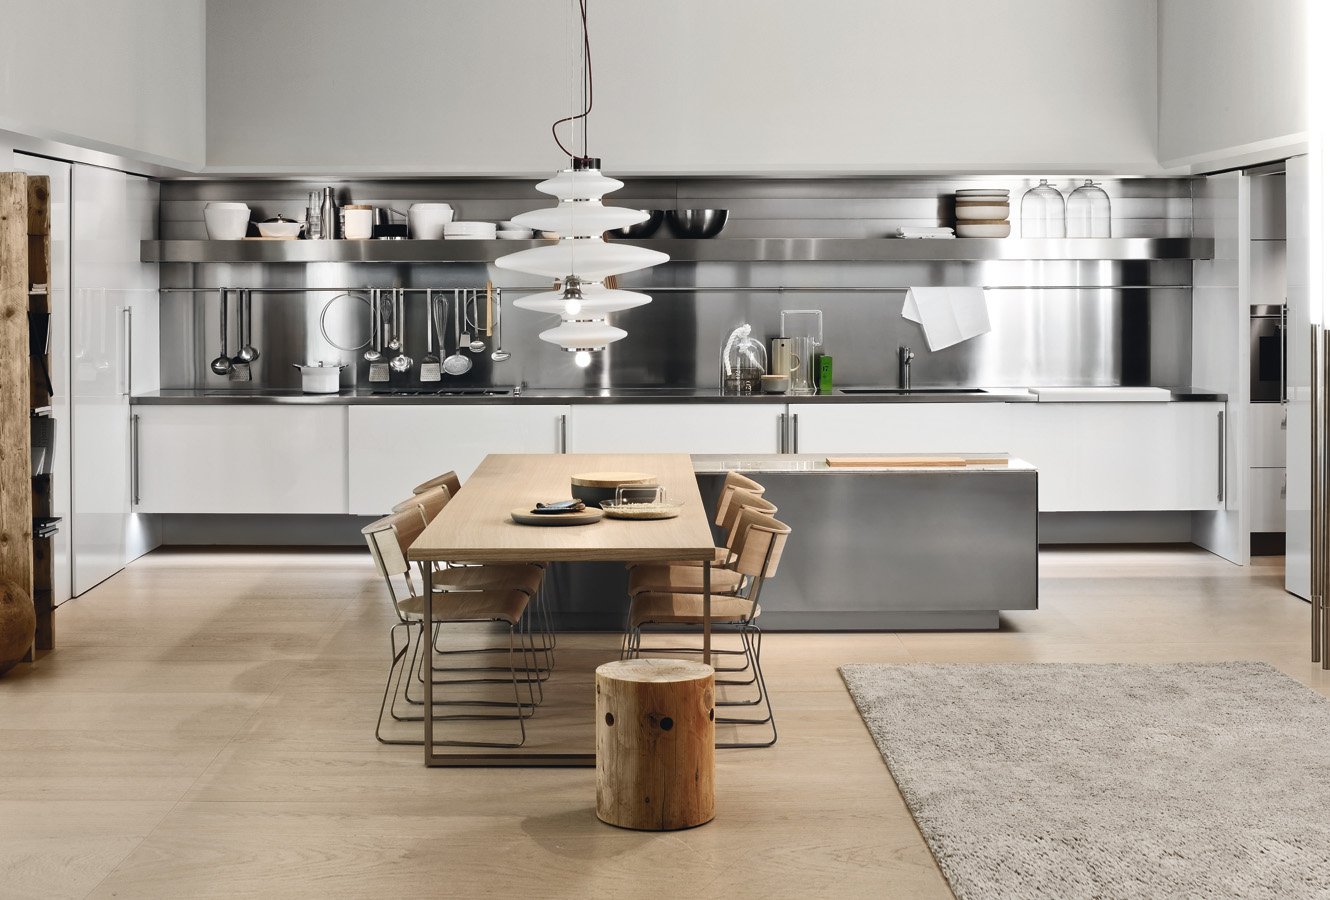 Modern italian kitchen design from arclinea - Cucine decorate ...